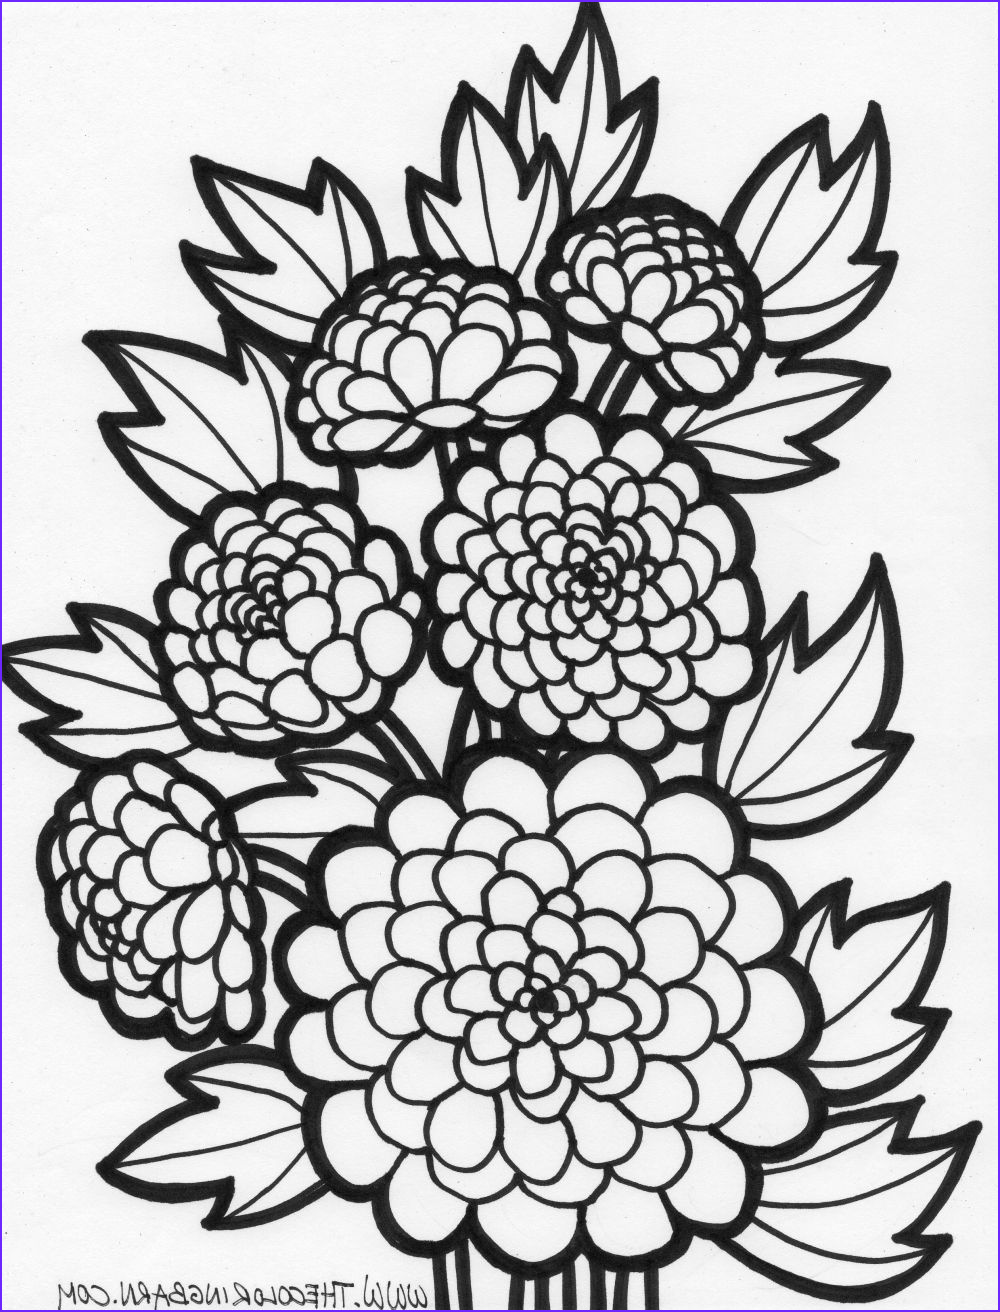 Printable Flower Coloring Page Cool Collection Coloring Pages Of Flowers For Teenagers Difficult